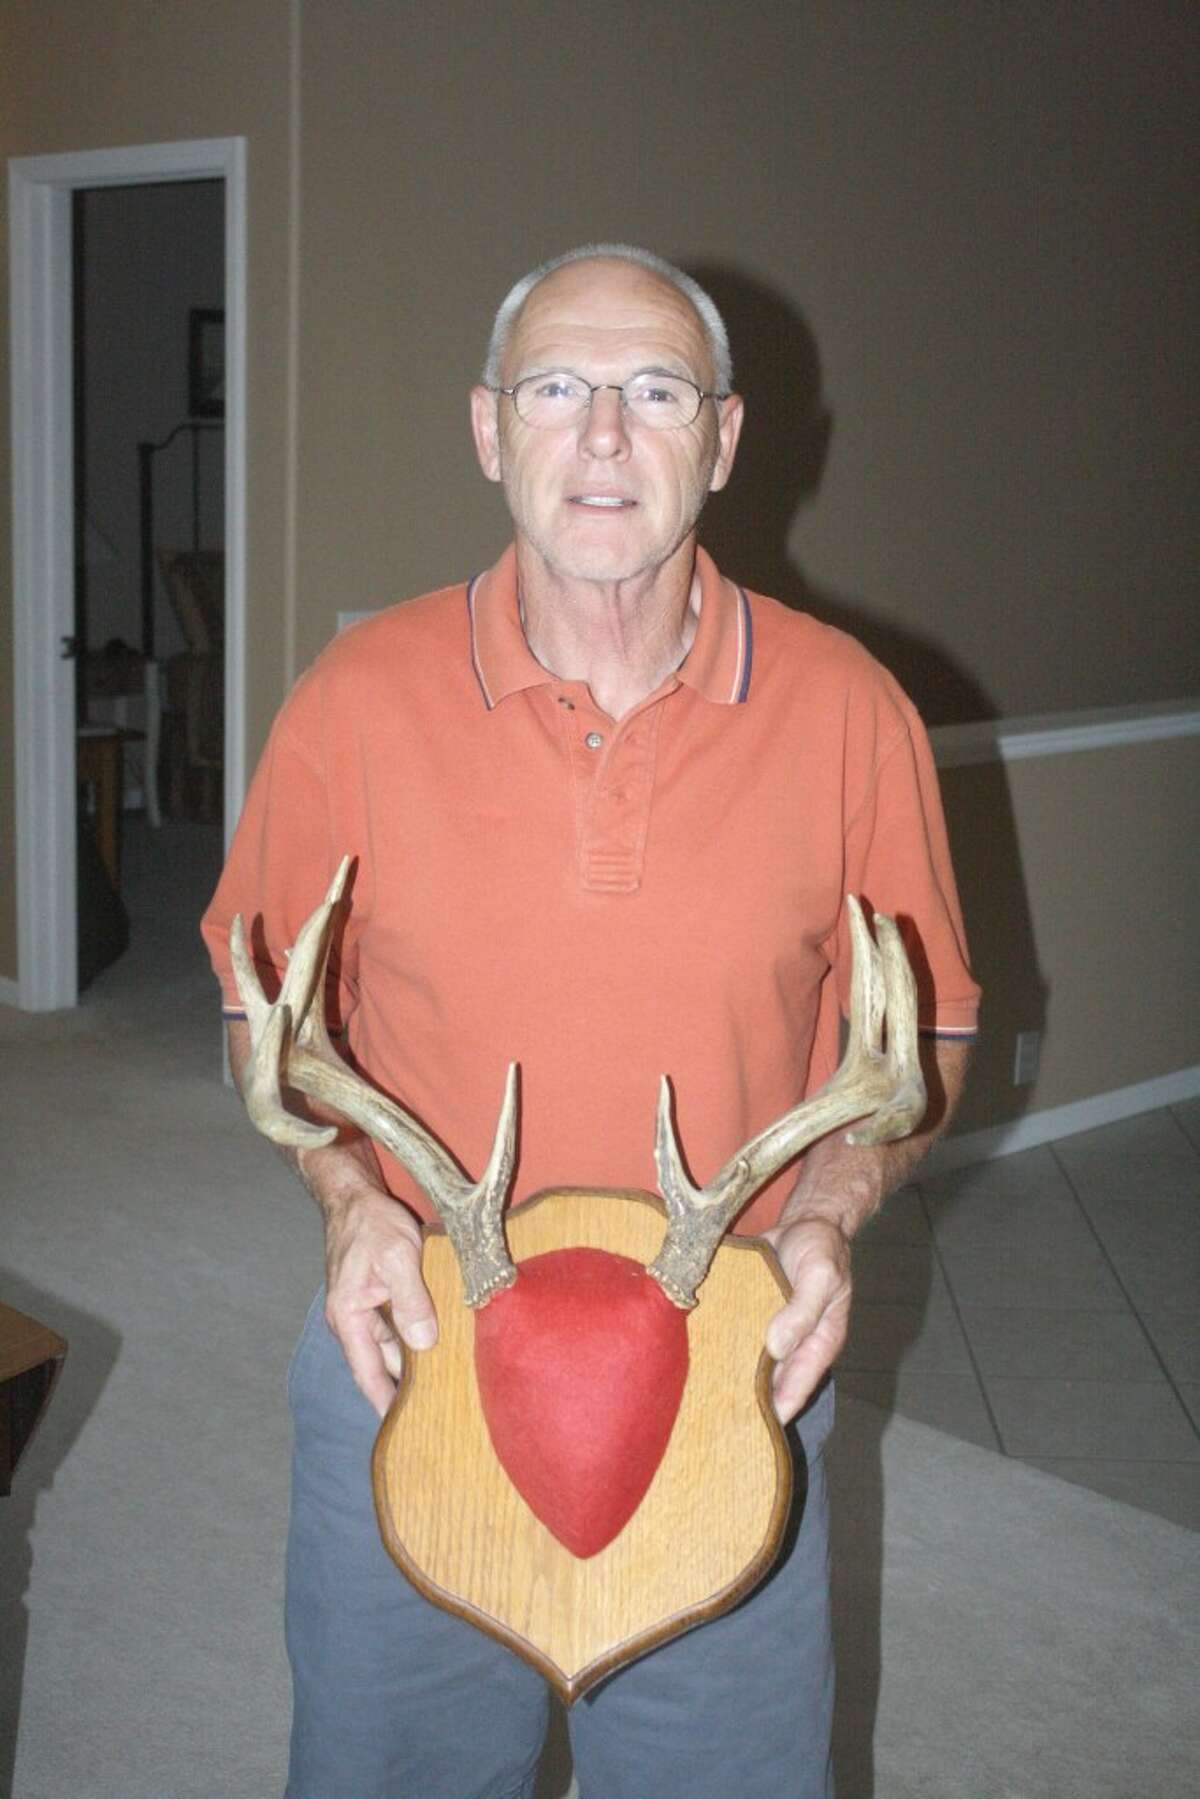 TROPHY BUCK: Reed City's George Vasicek shows the rack of a trophy buck he has shot during his hunting career. (Herald Review photo/John Raffel)